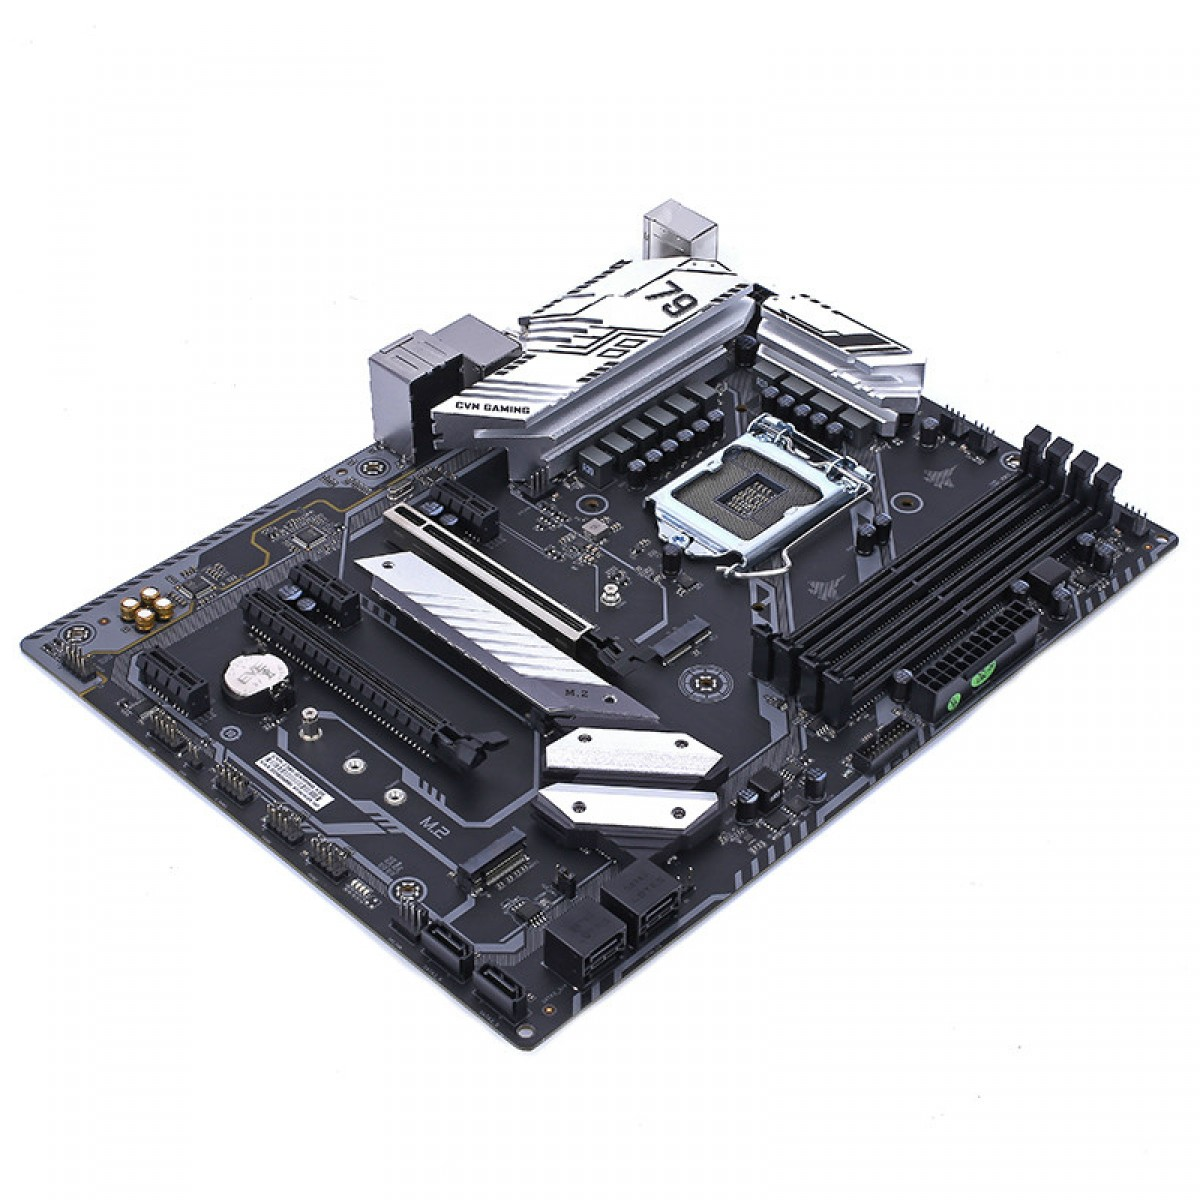 Placa Mãe Colorful CVN Z390 GAMING V20, Chipset Z390, Intel LGA 1151, ATX, DDR4